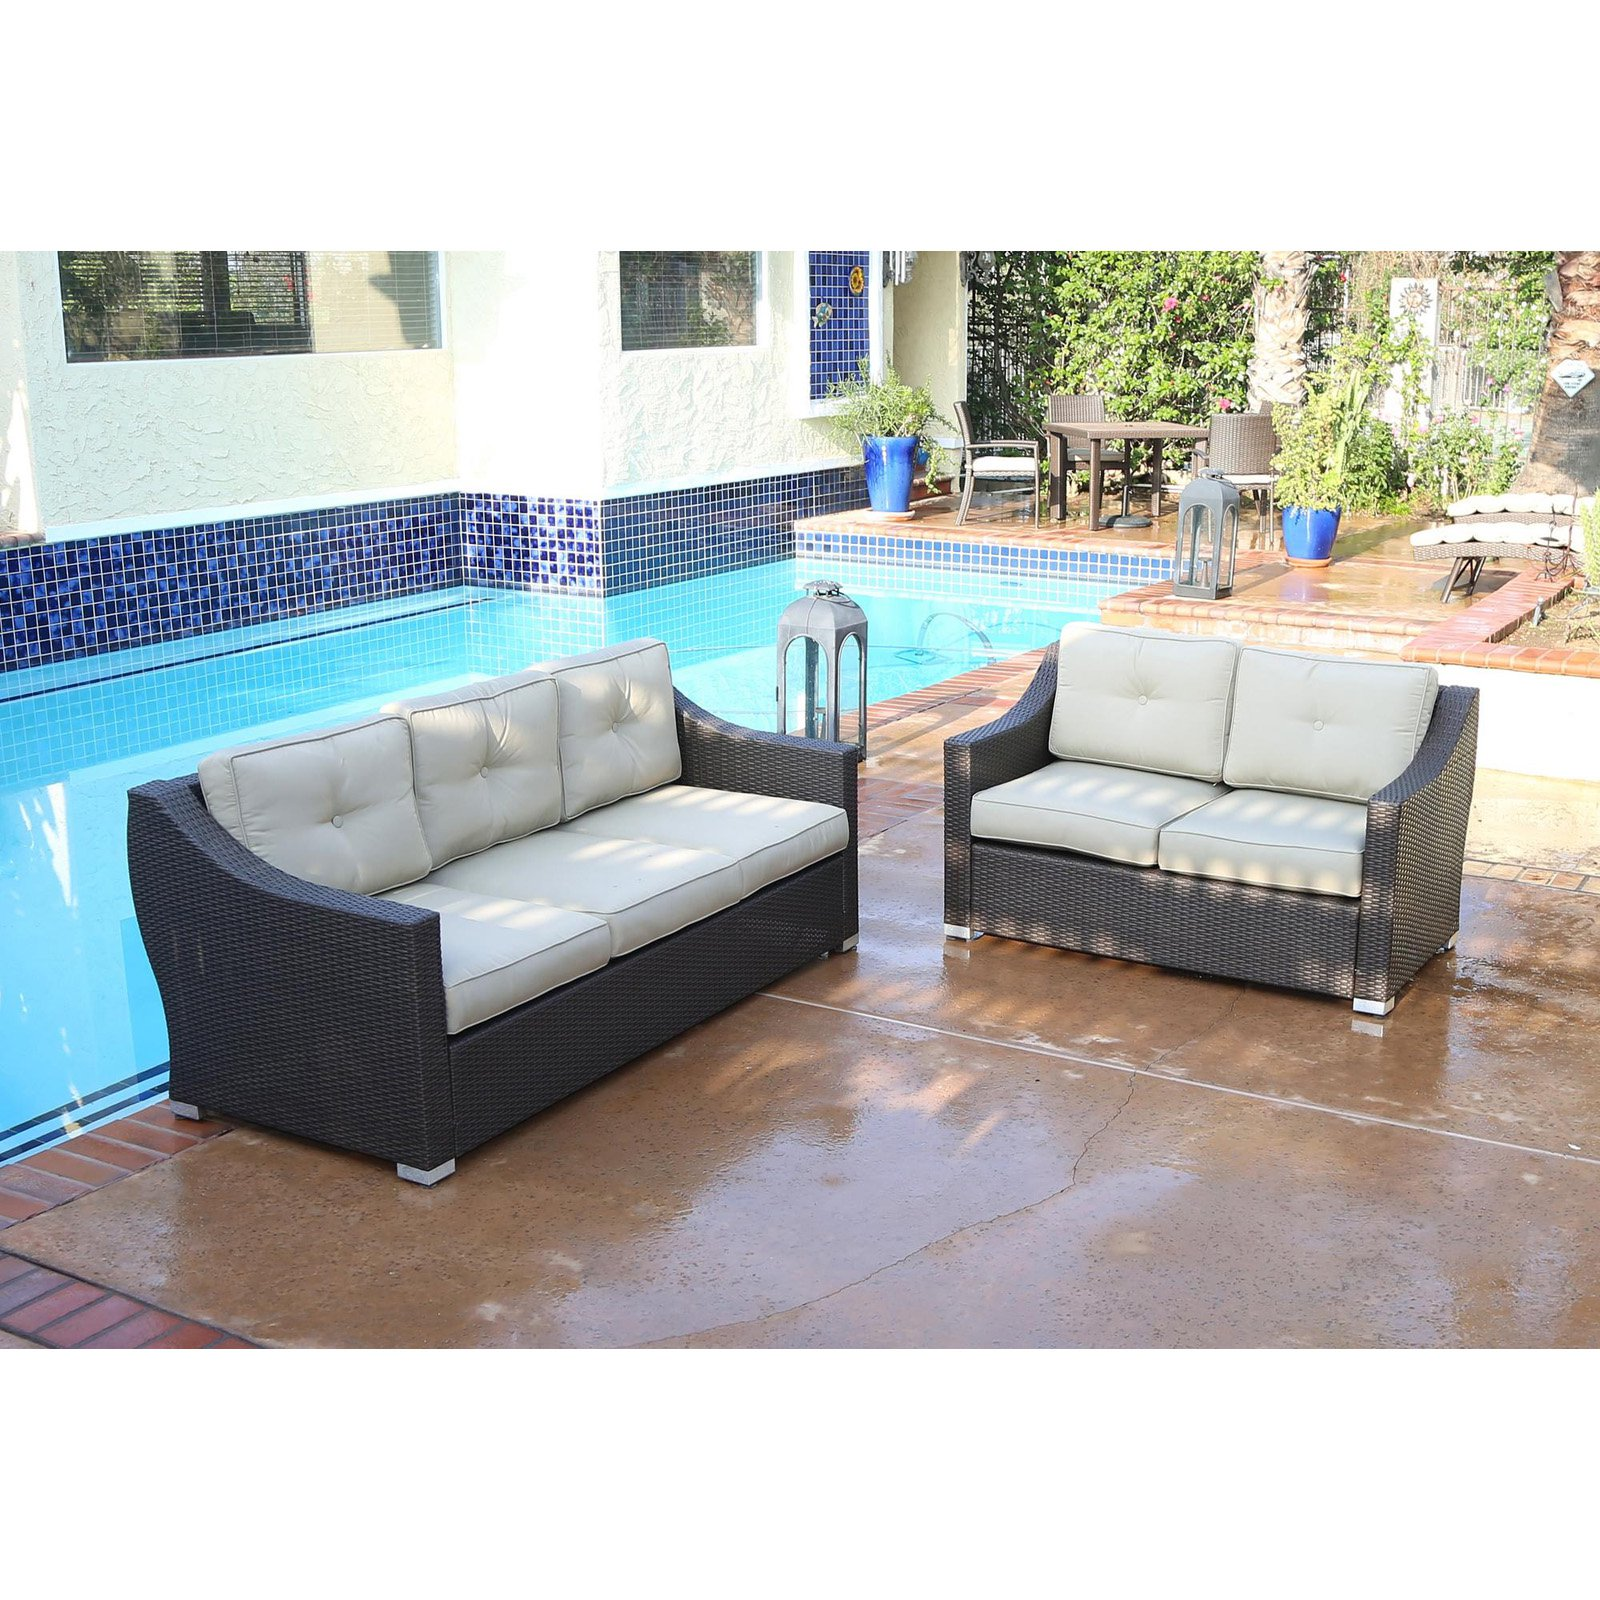 JJ Designs South Beach Wicker 2 Piece Deep Seating Patio Sofa And Loveseat  Conversation Set